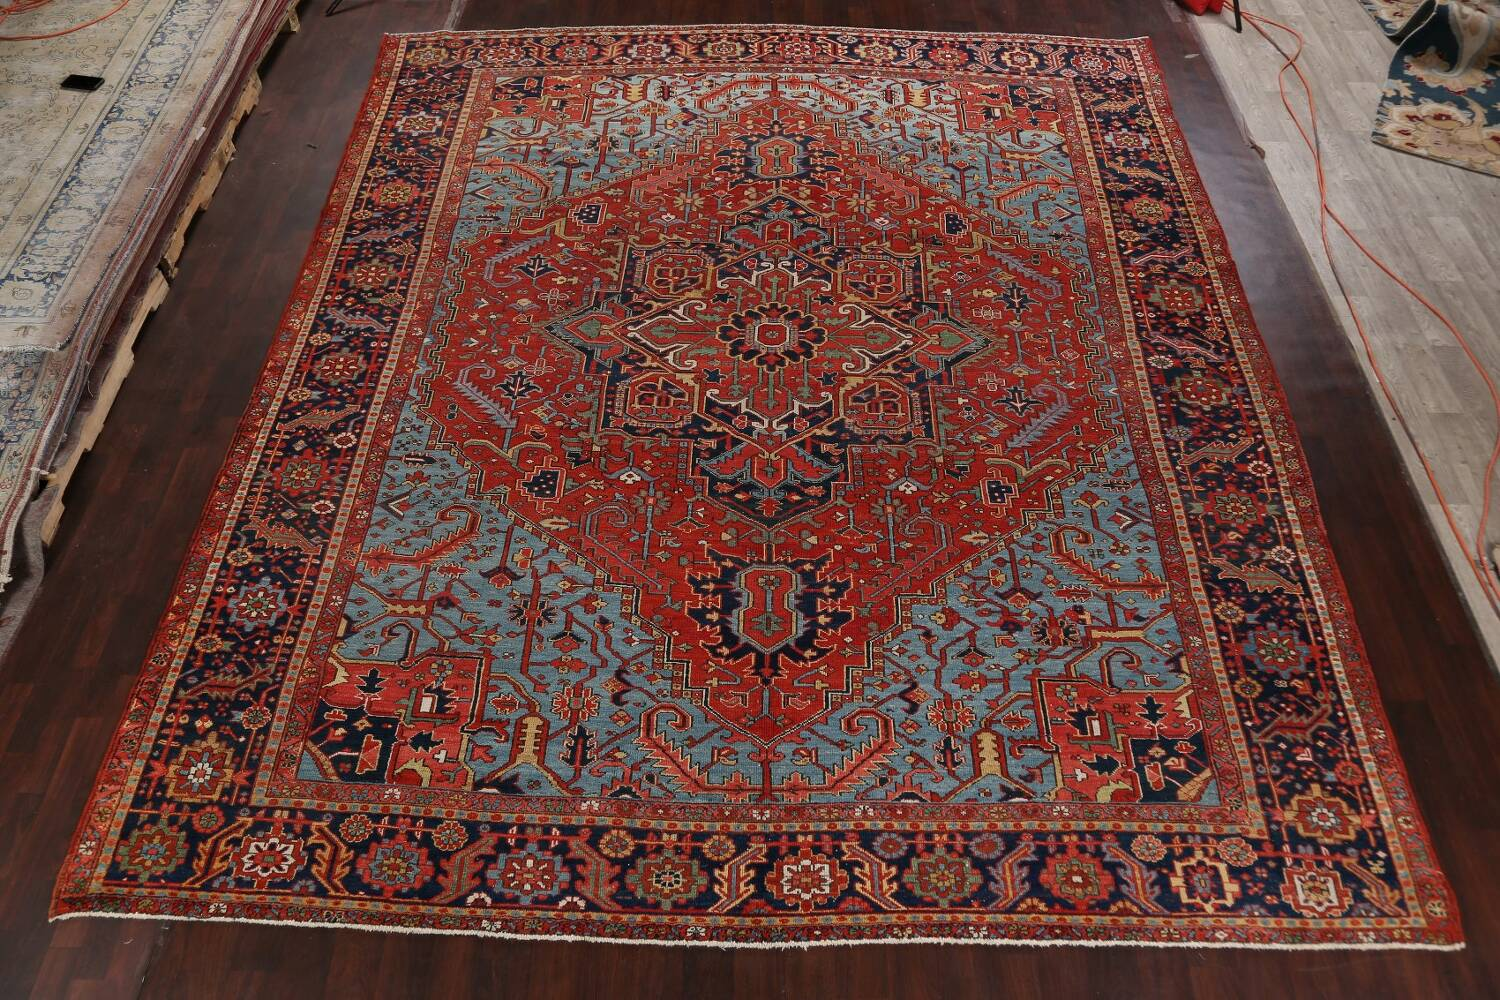 Pre-1900 Antique Vegetable Dye Heriz Serapi Persian Rug 12x14 image 2